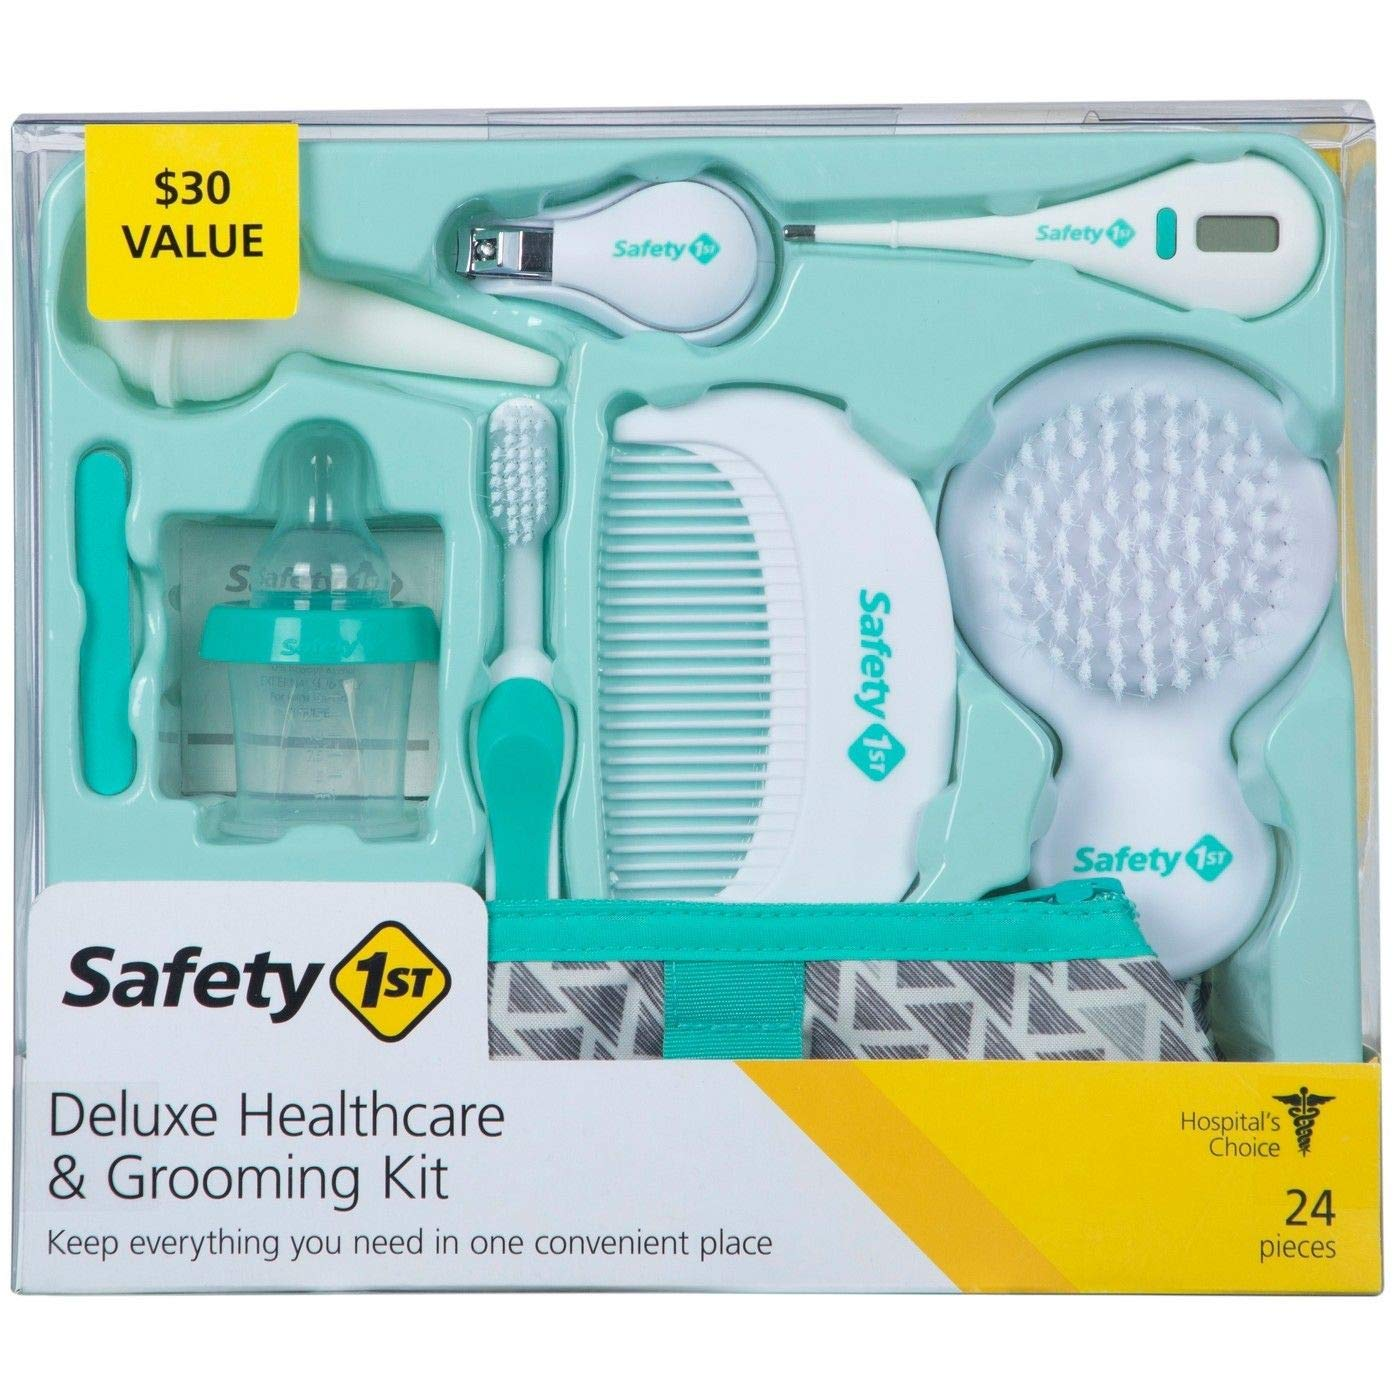 Safety 1st Deluxe Healthcare & Grooming Kit, Pyramids Aqua, Pyramids Aqua, One Size